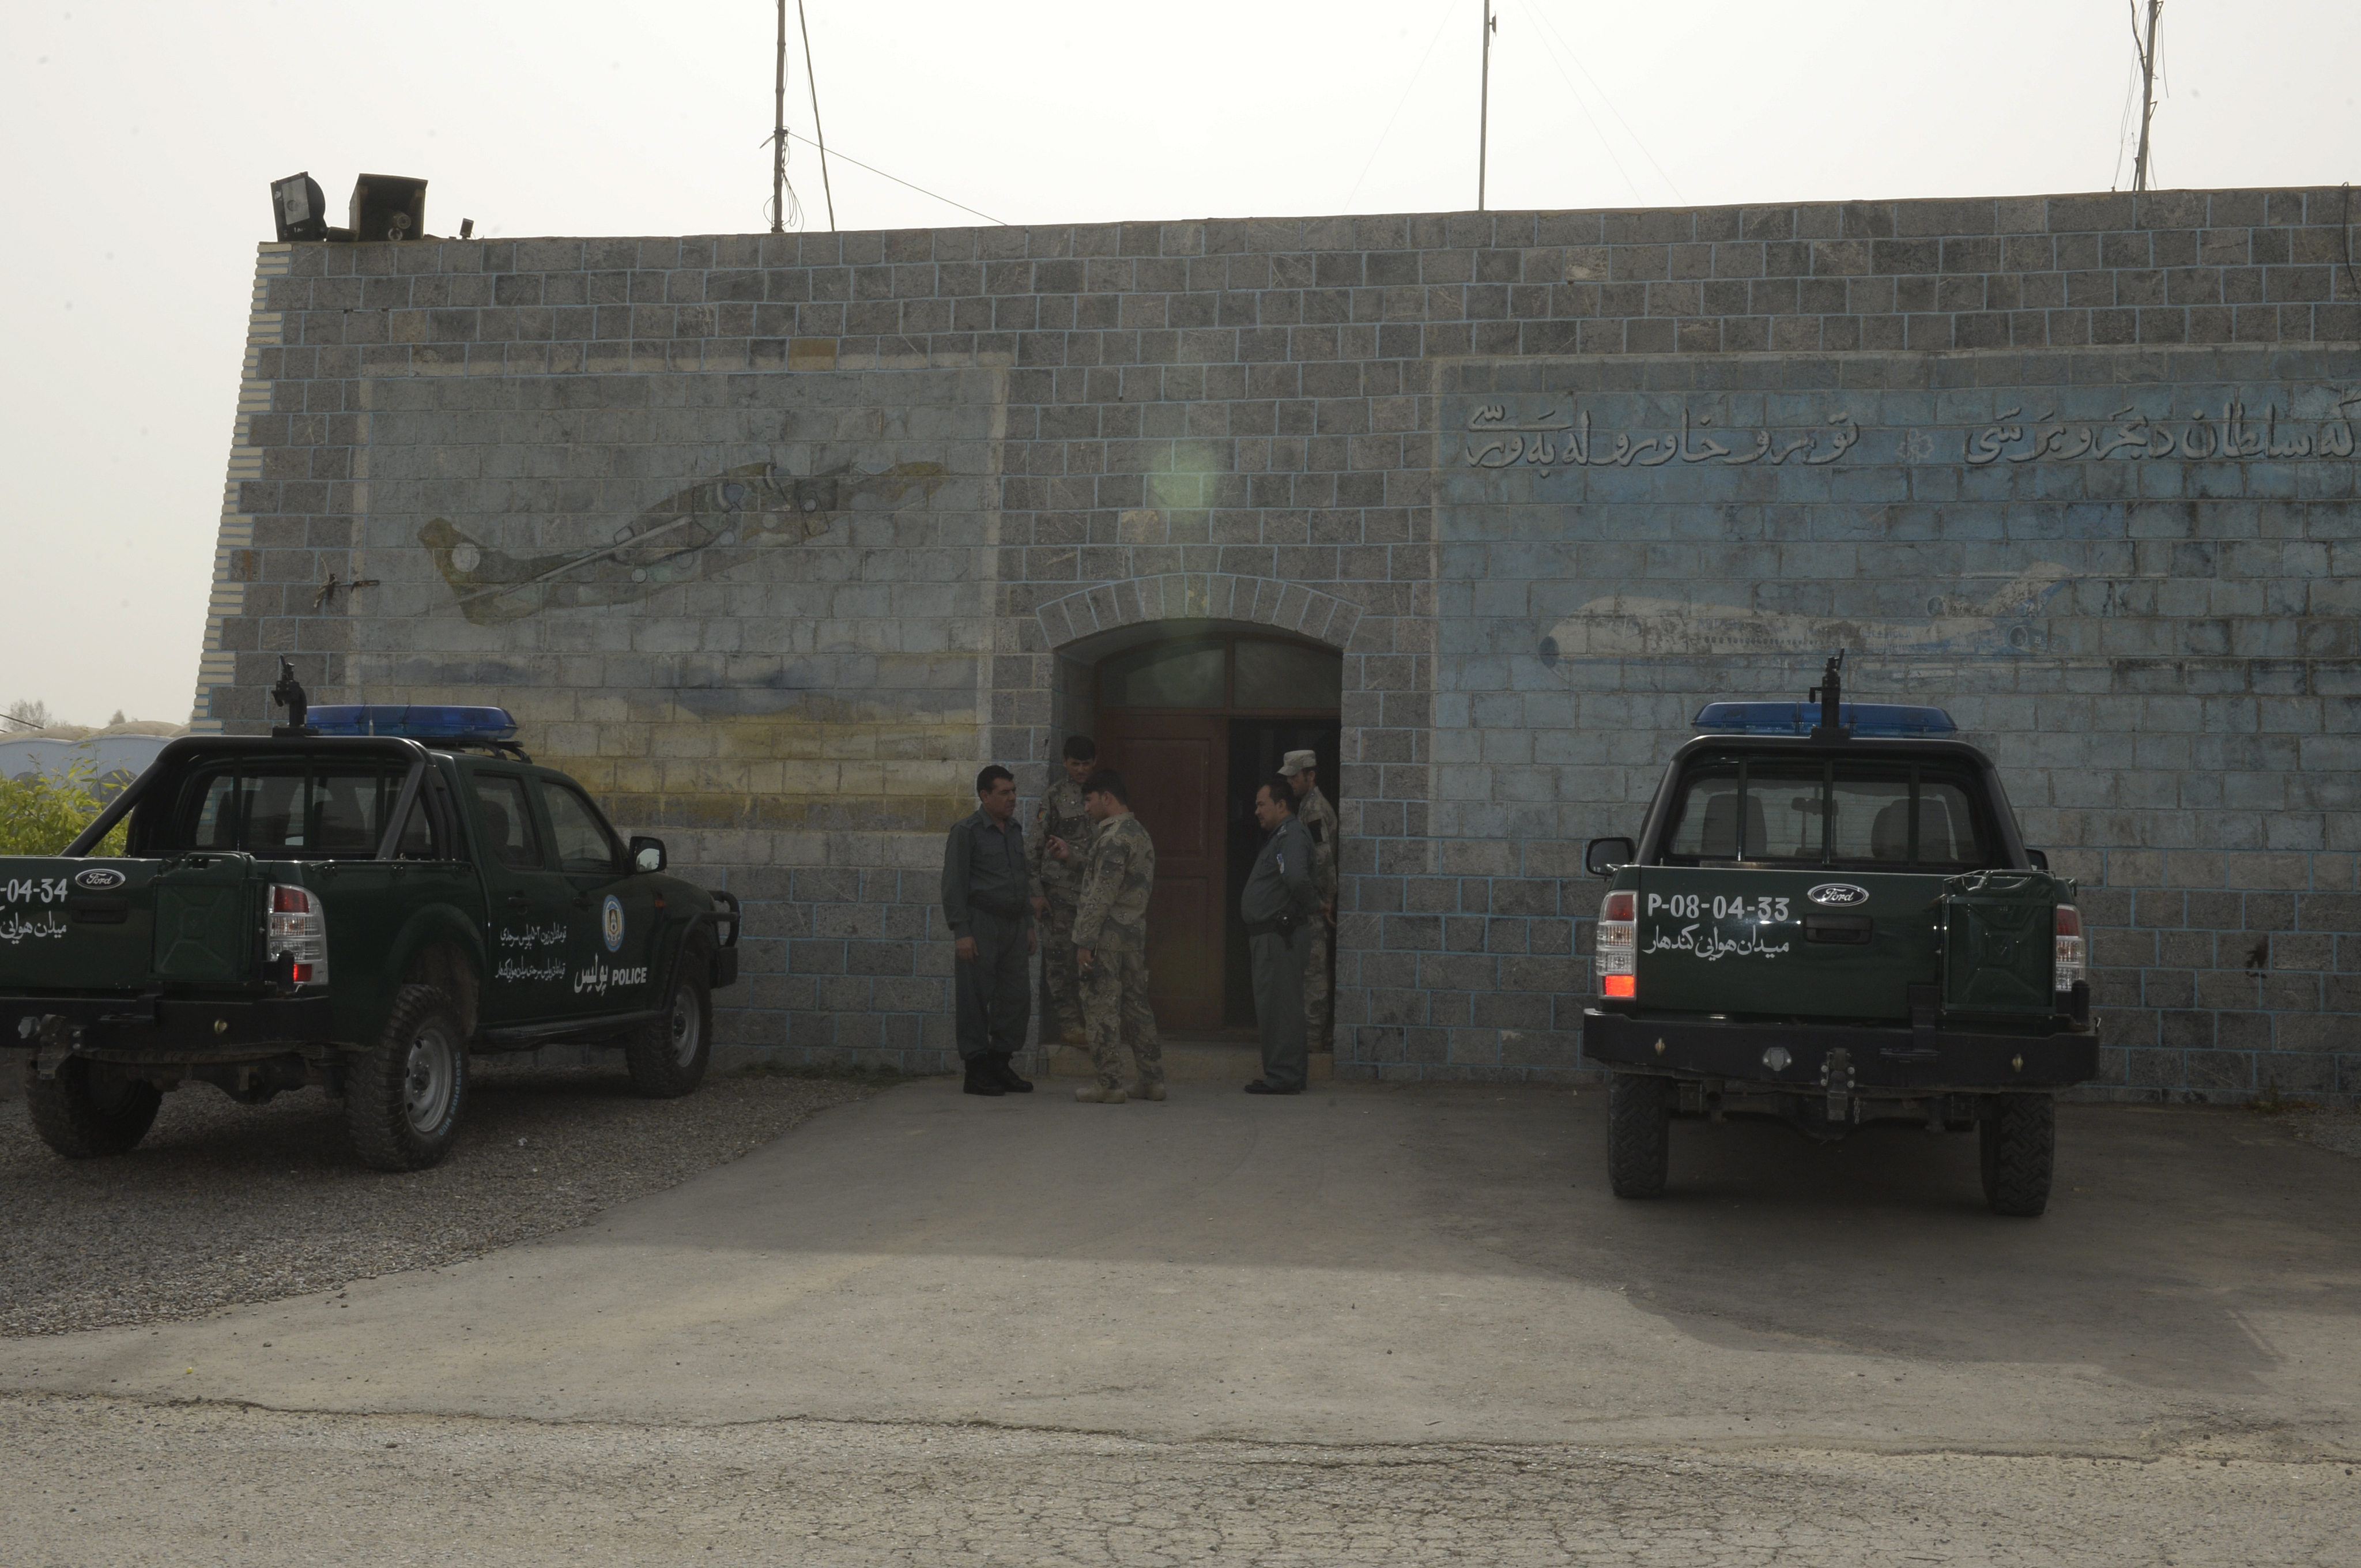 Abp 656 file:women from 203rd zone afghan border police and taac-s